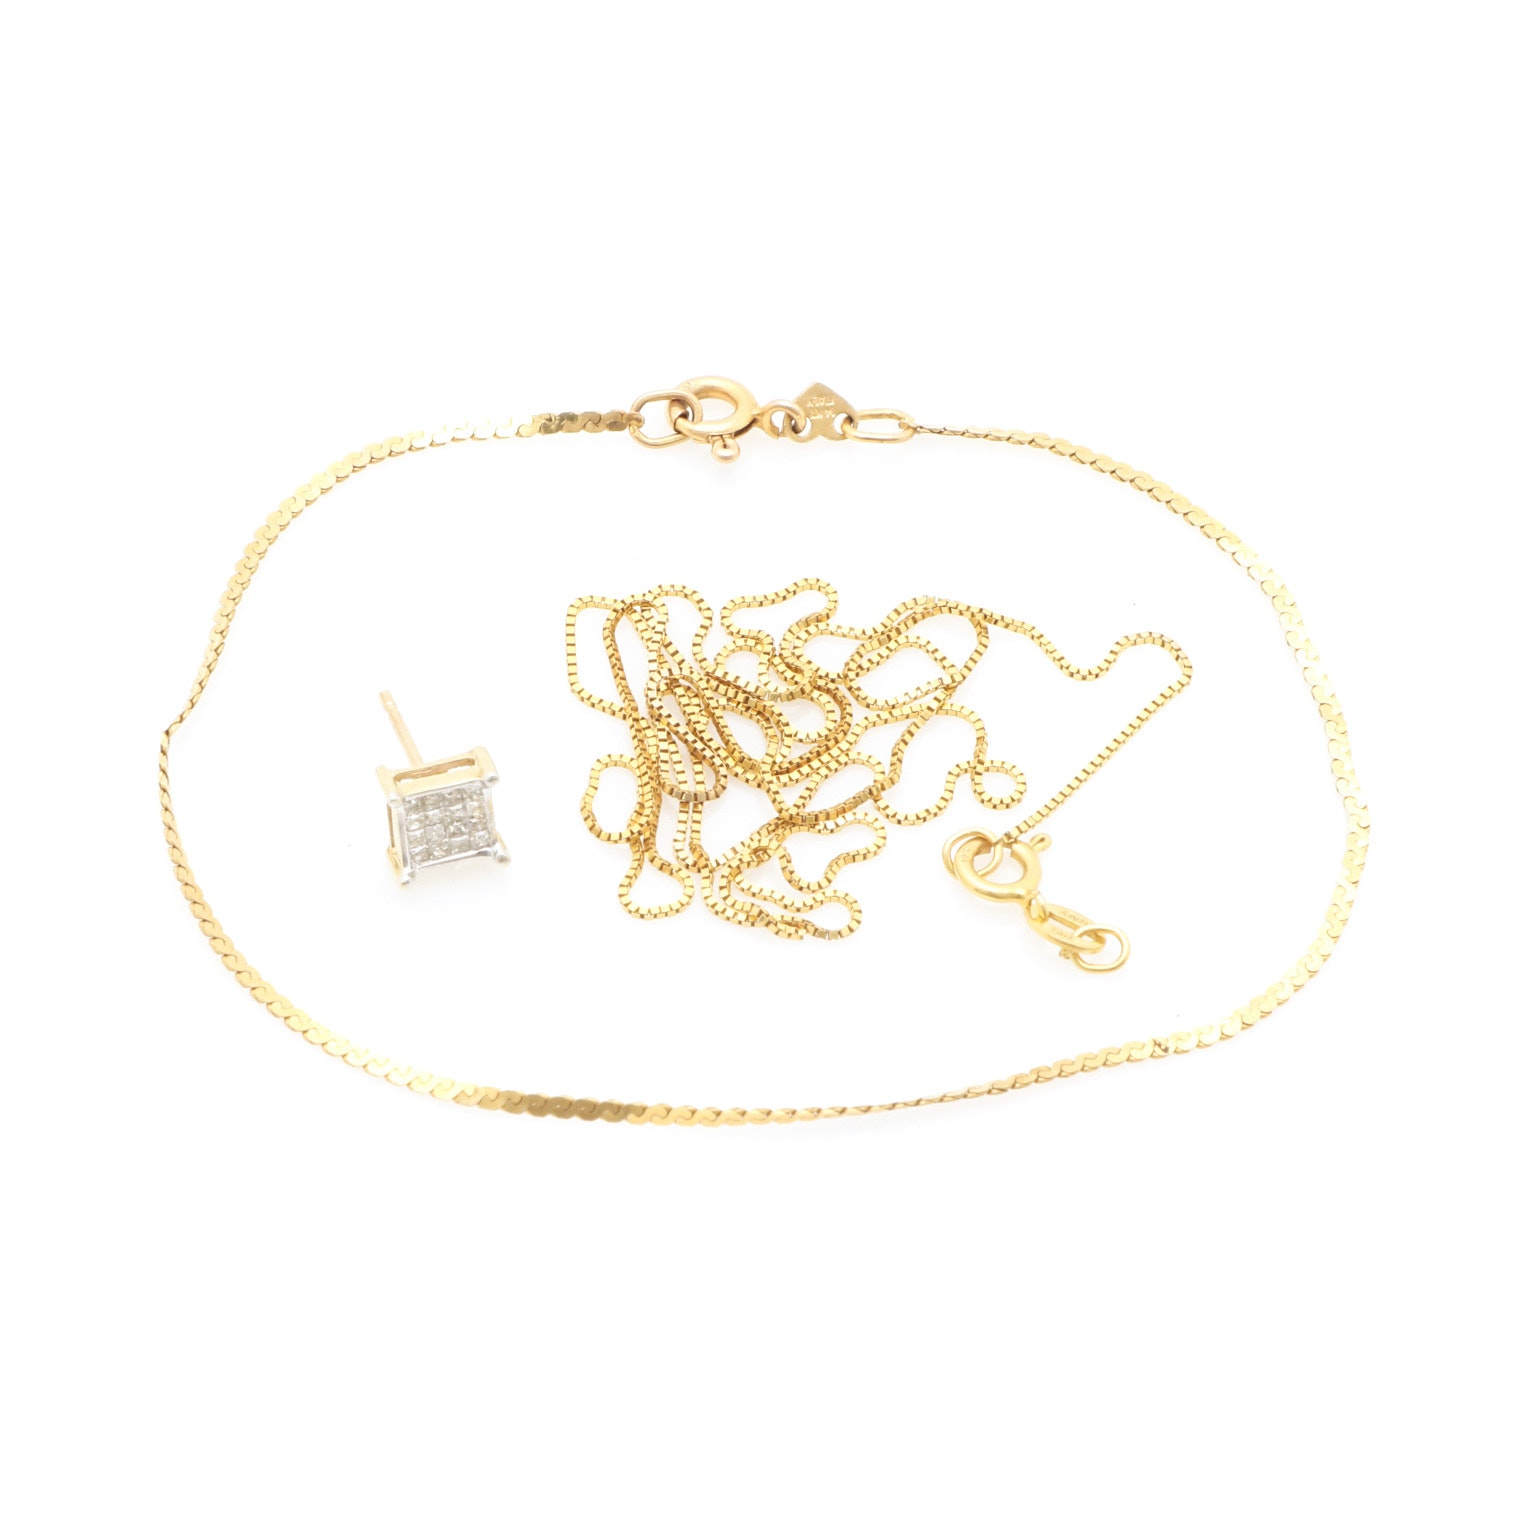 14K Yellow Gold and Diamond Jewelry For Scrap